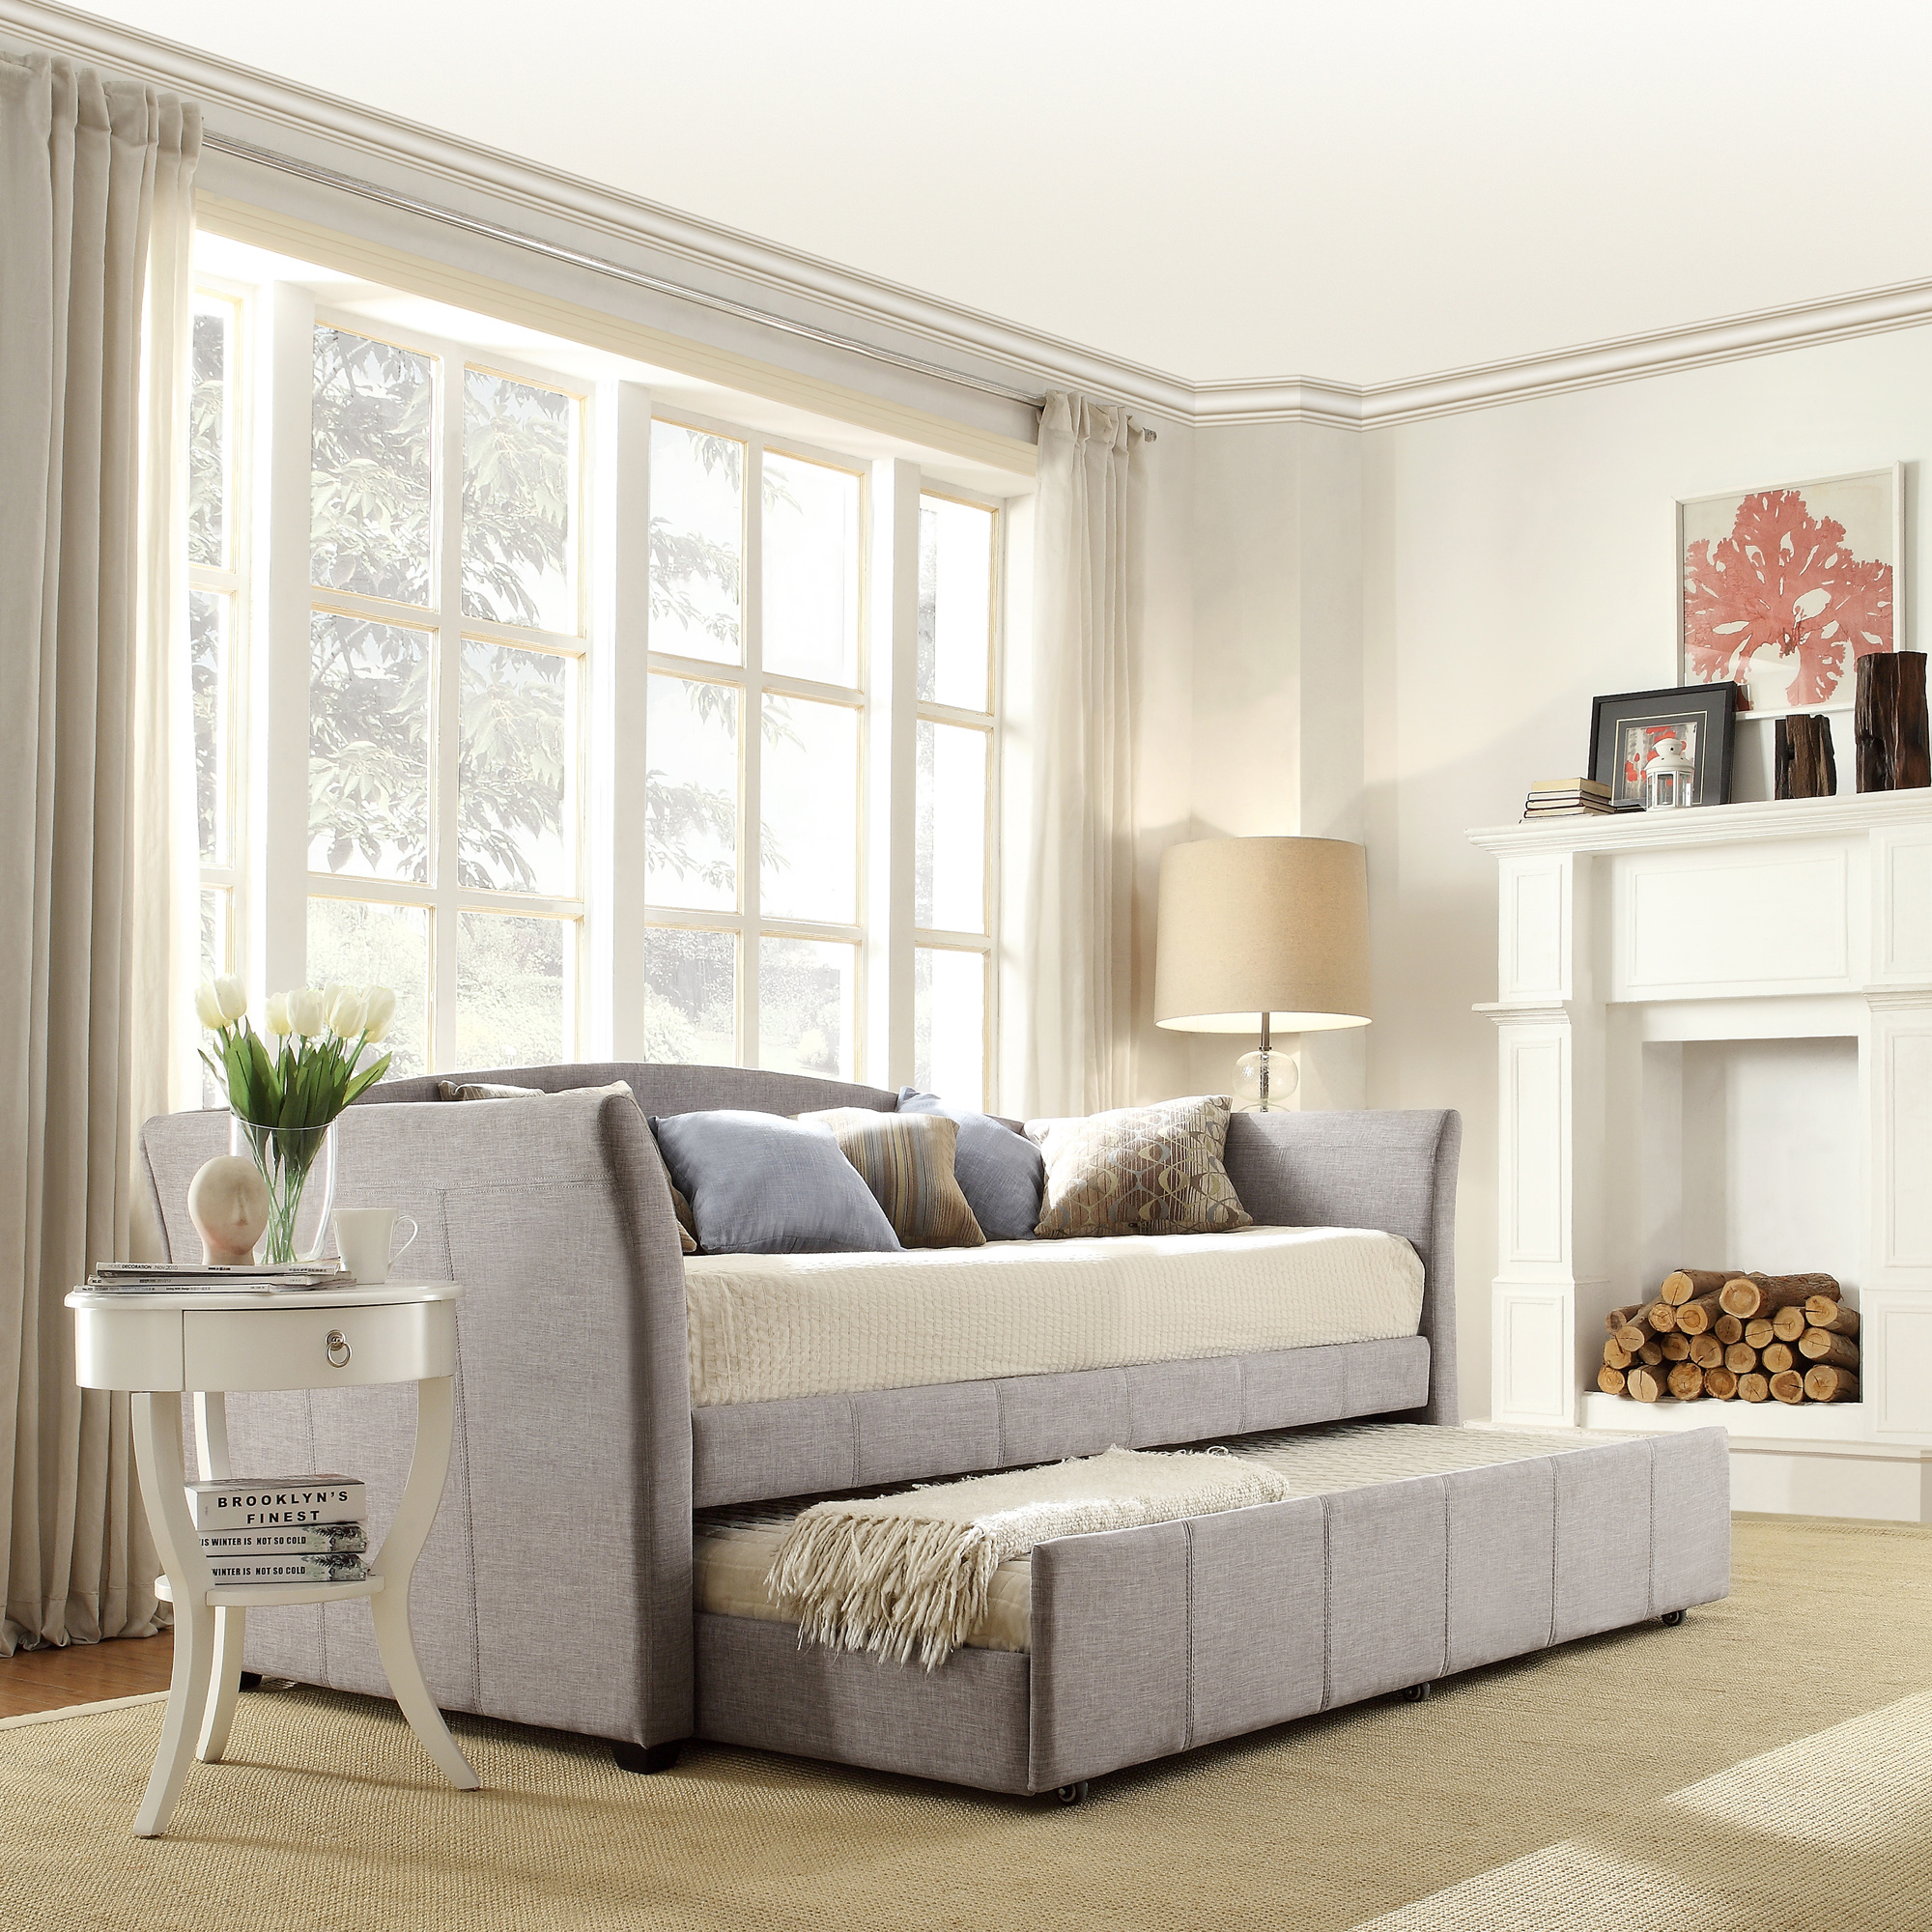 Living Room Queen Creek Oxford Creek Blake Gray Linen Day Bed With Trundle Bed